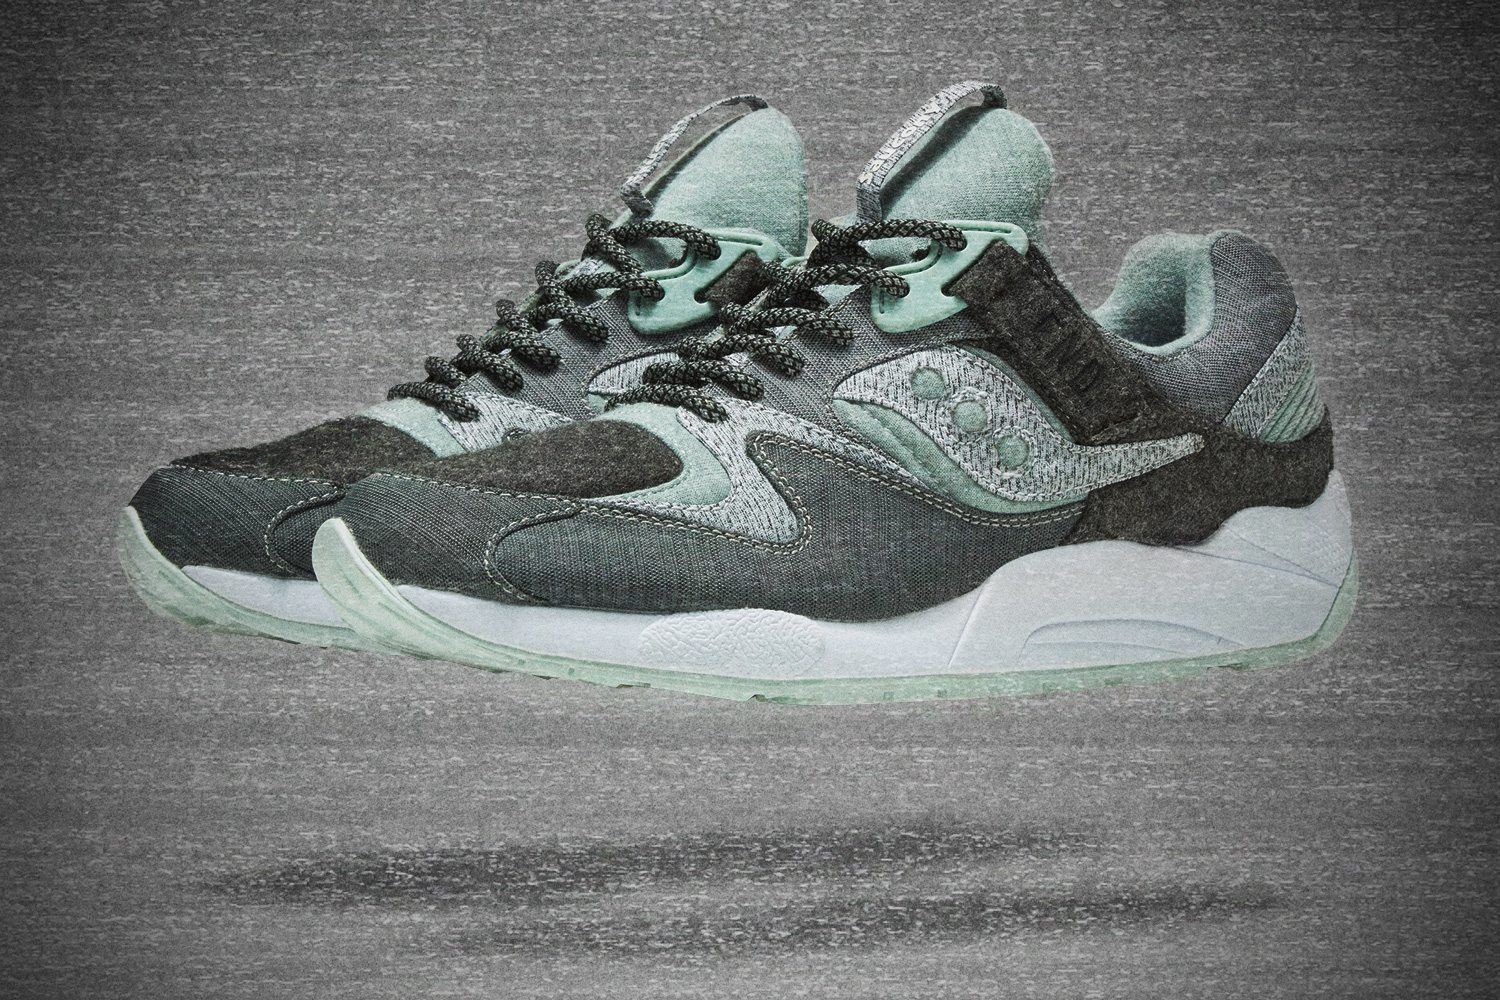 END x Saucony GRID 9000 White Noise 1